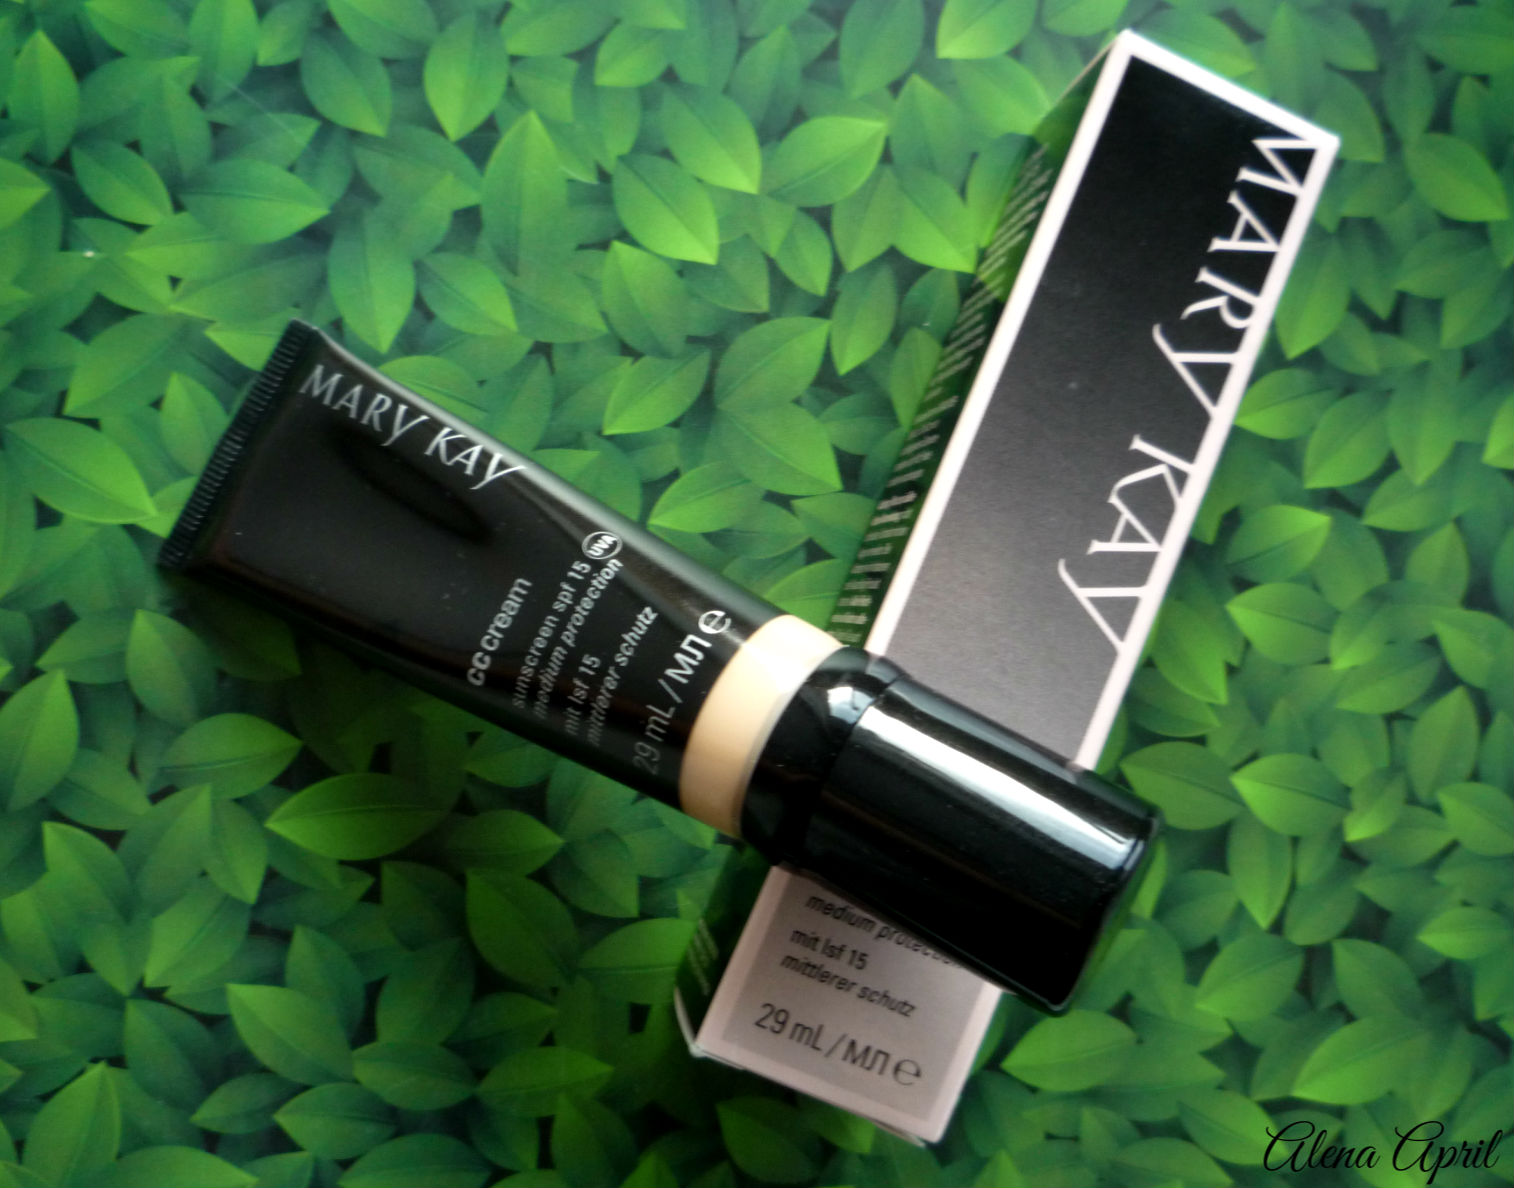 CC крем с SPF 15 от Mary Kay, Very Light, отзывы